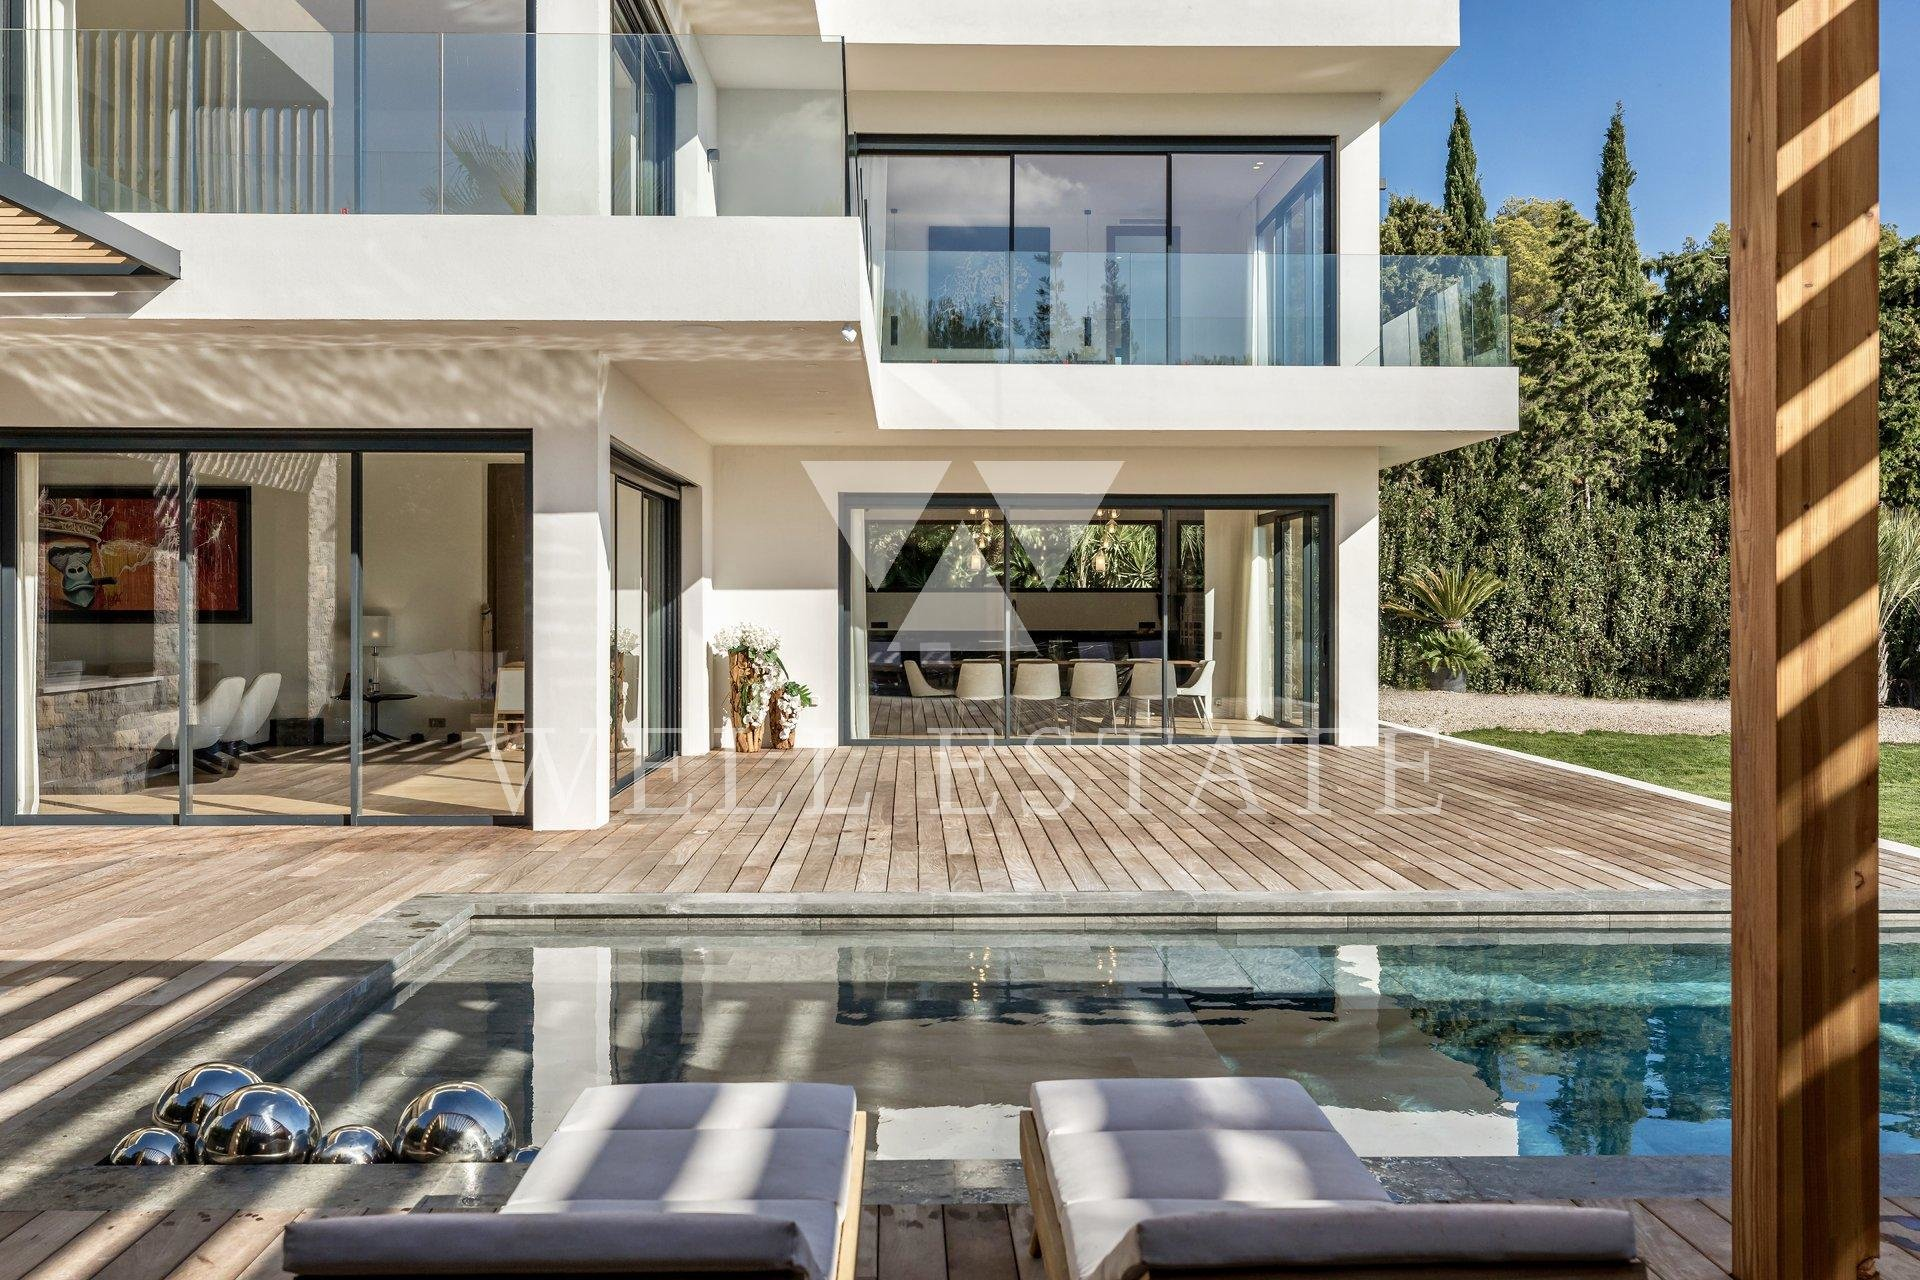 MOUGINS NEW CONTEMPORARY VILLA 720M2 ON 2900M2 LAND HEATED INFINITY SWIMMING POOL AND MINI GOLF